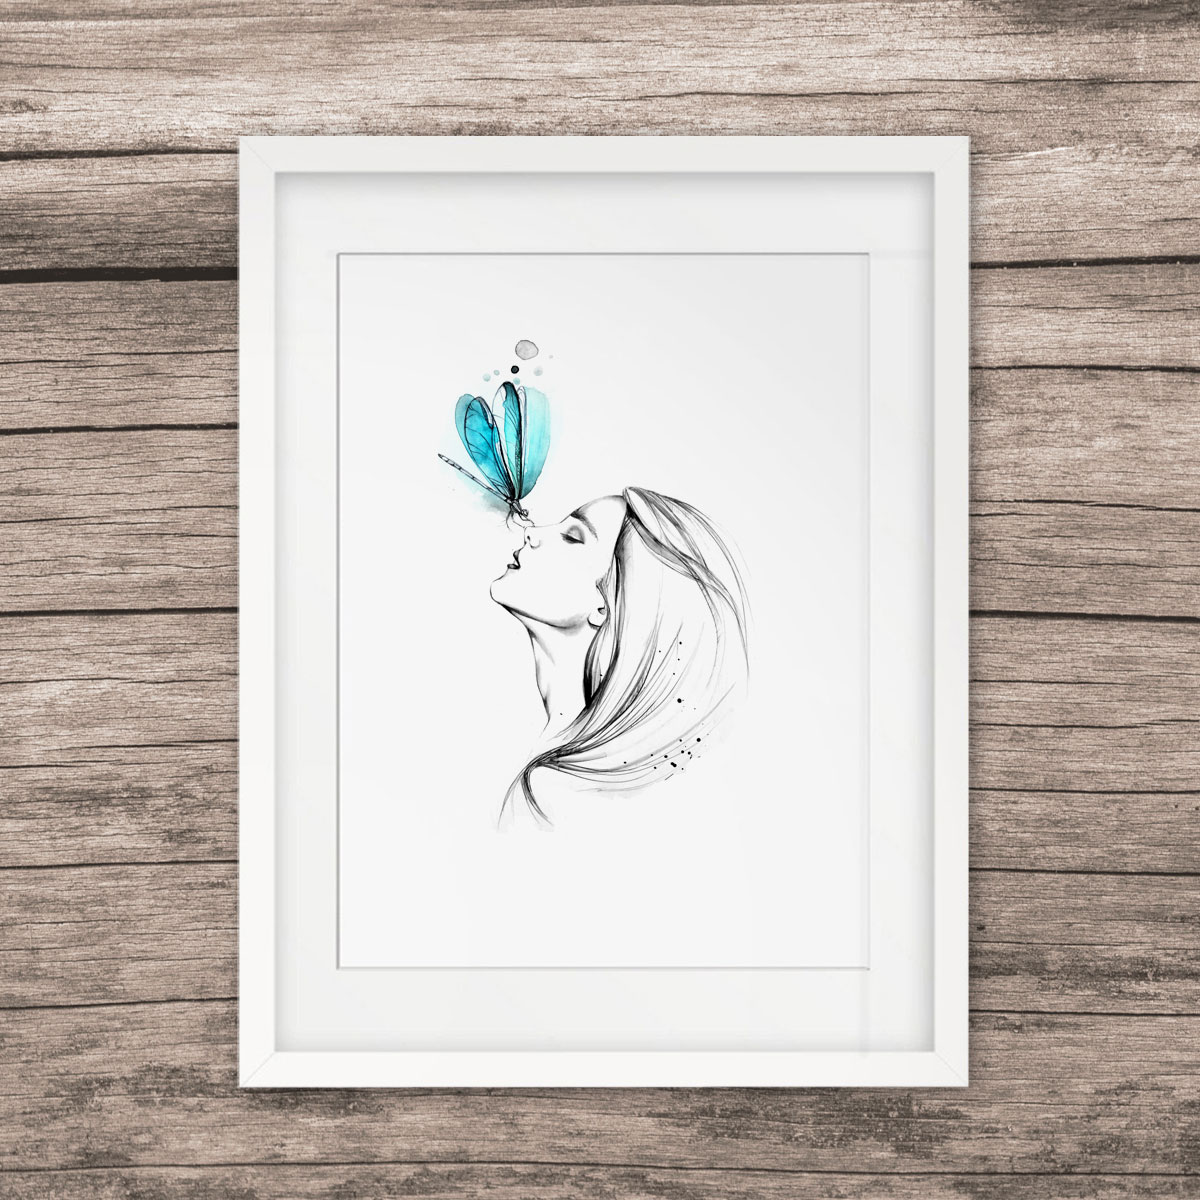 Us 5 6 girl with butterfly pencil sketch watercolor painting sweet home poster wall art decor room wall hanging art pictures gift e327 in painting